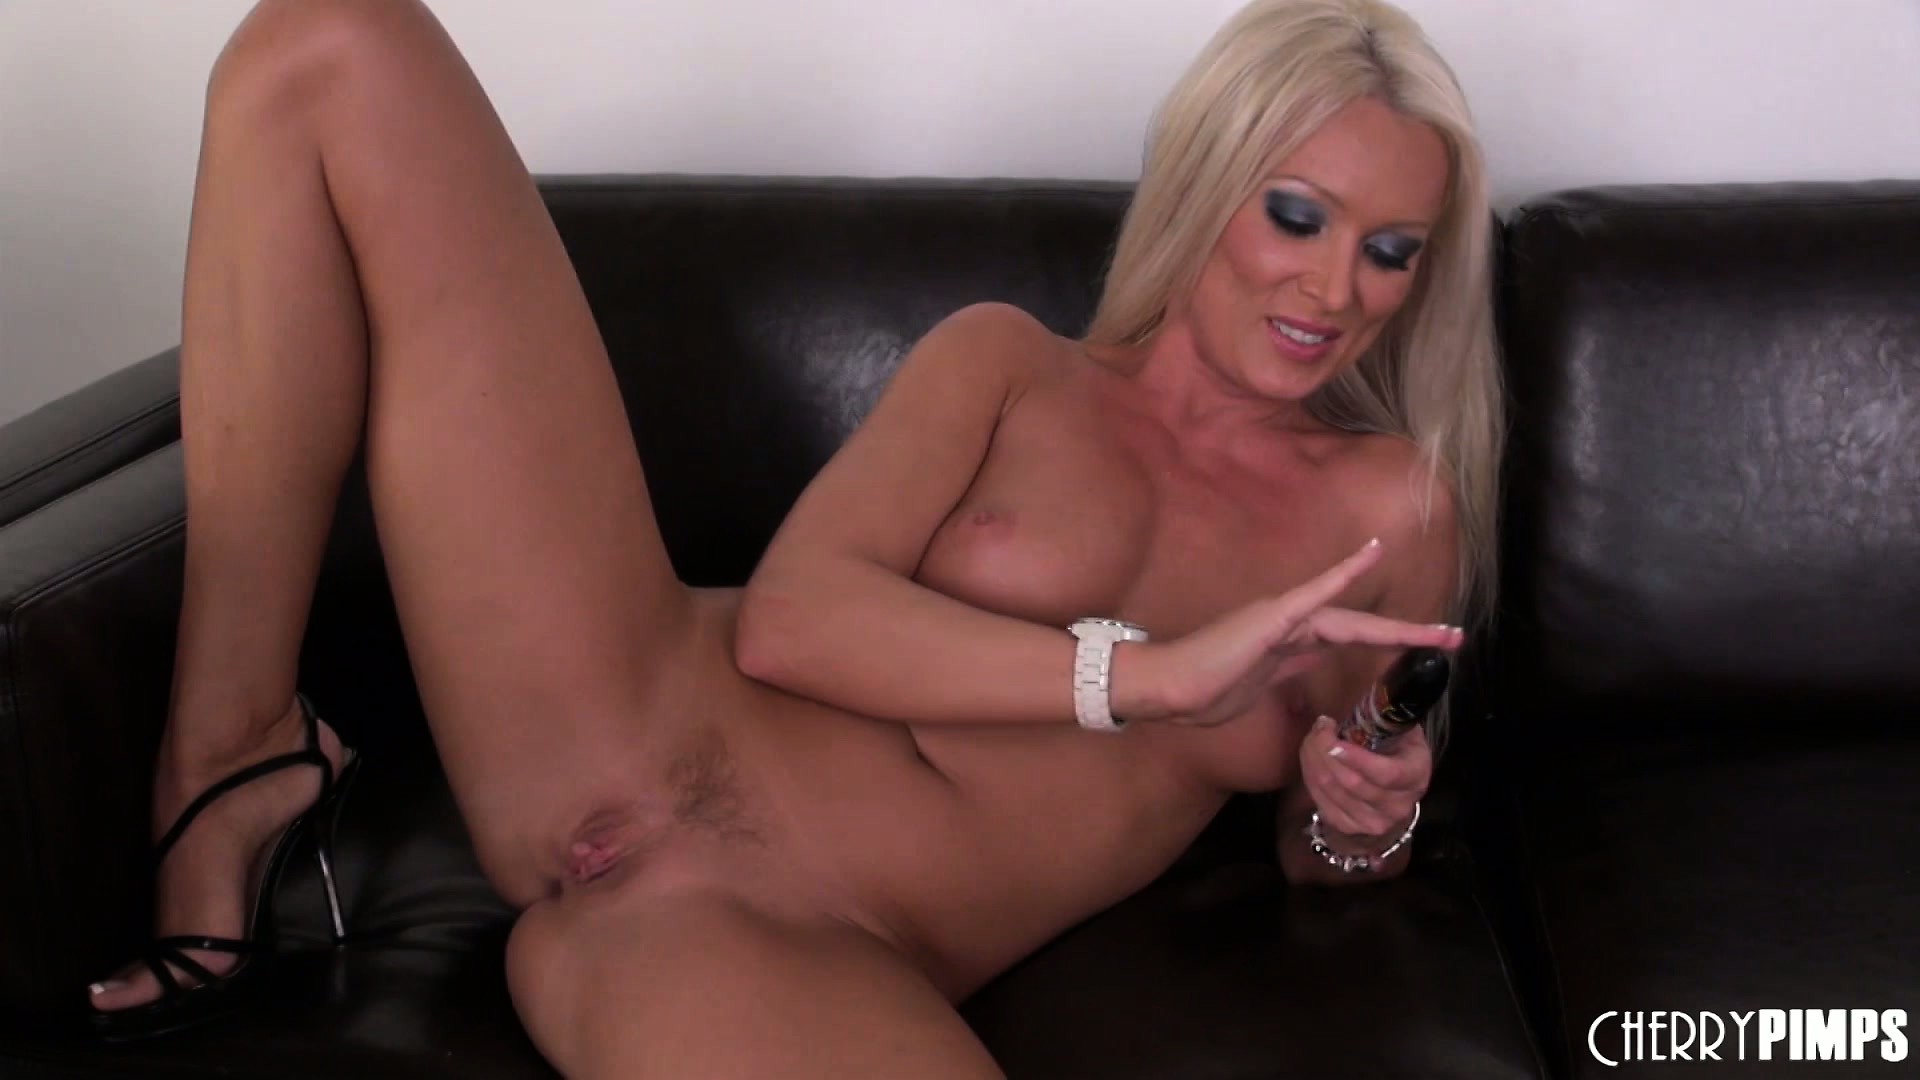 Porn Tube of Heavenly Blonde With Sublime Tits And Ass Diana Doll Fulfills Her Needs With A Dildo